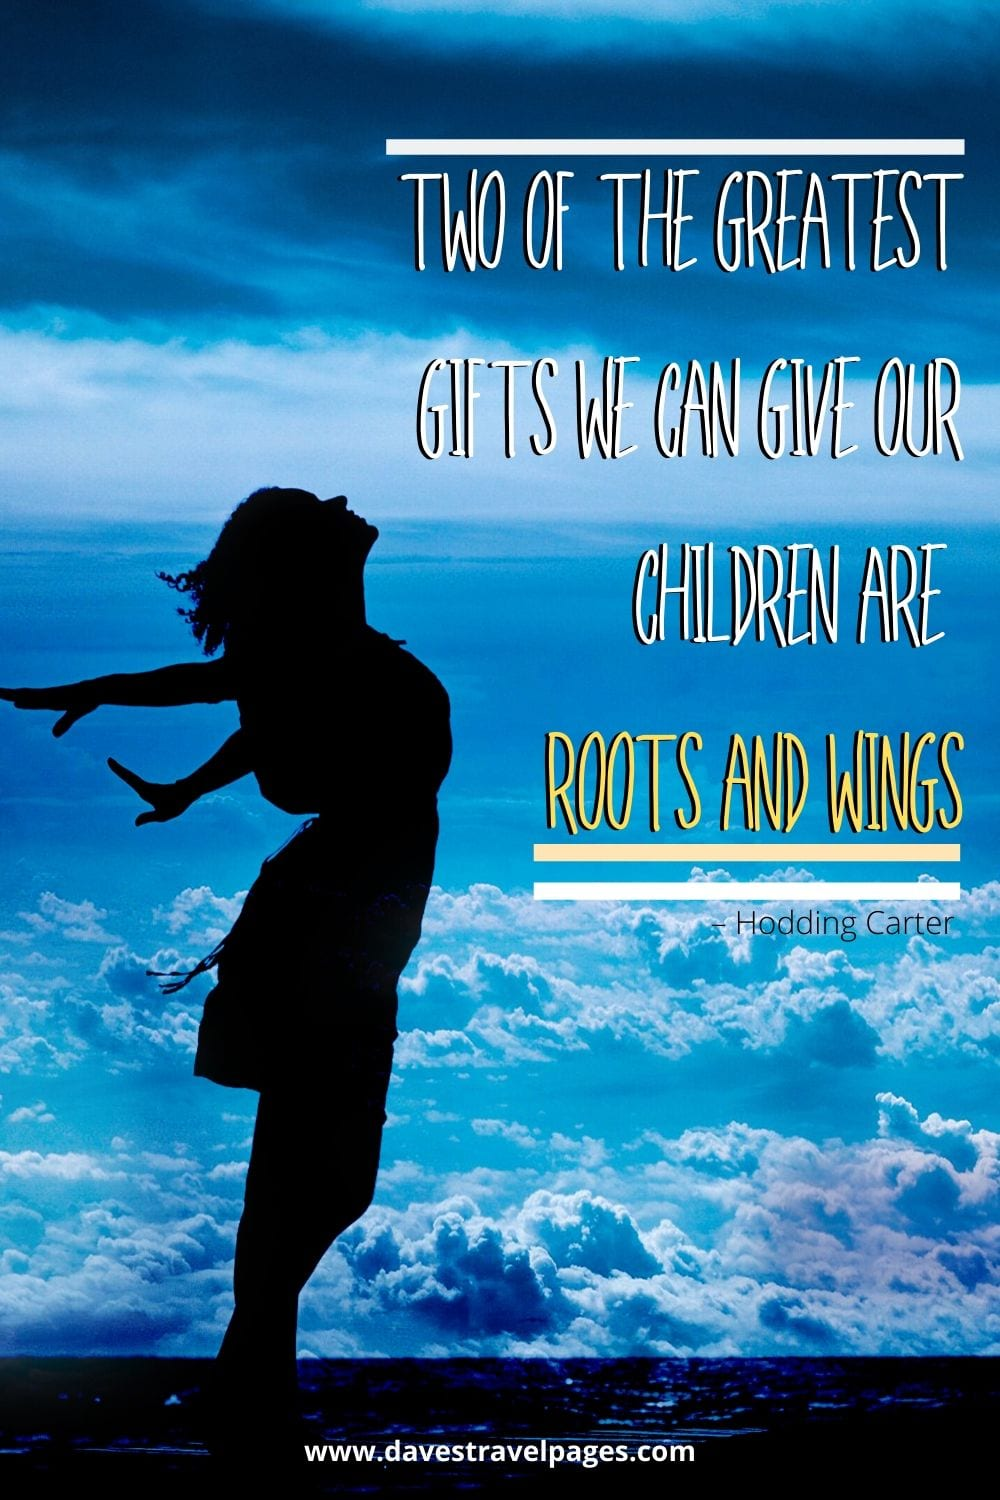 """Inspiring quotes - """"Two of the greatest gifts we can give our children are roots and wings"""" – Hodding Carter"""